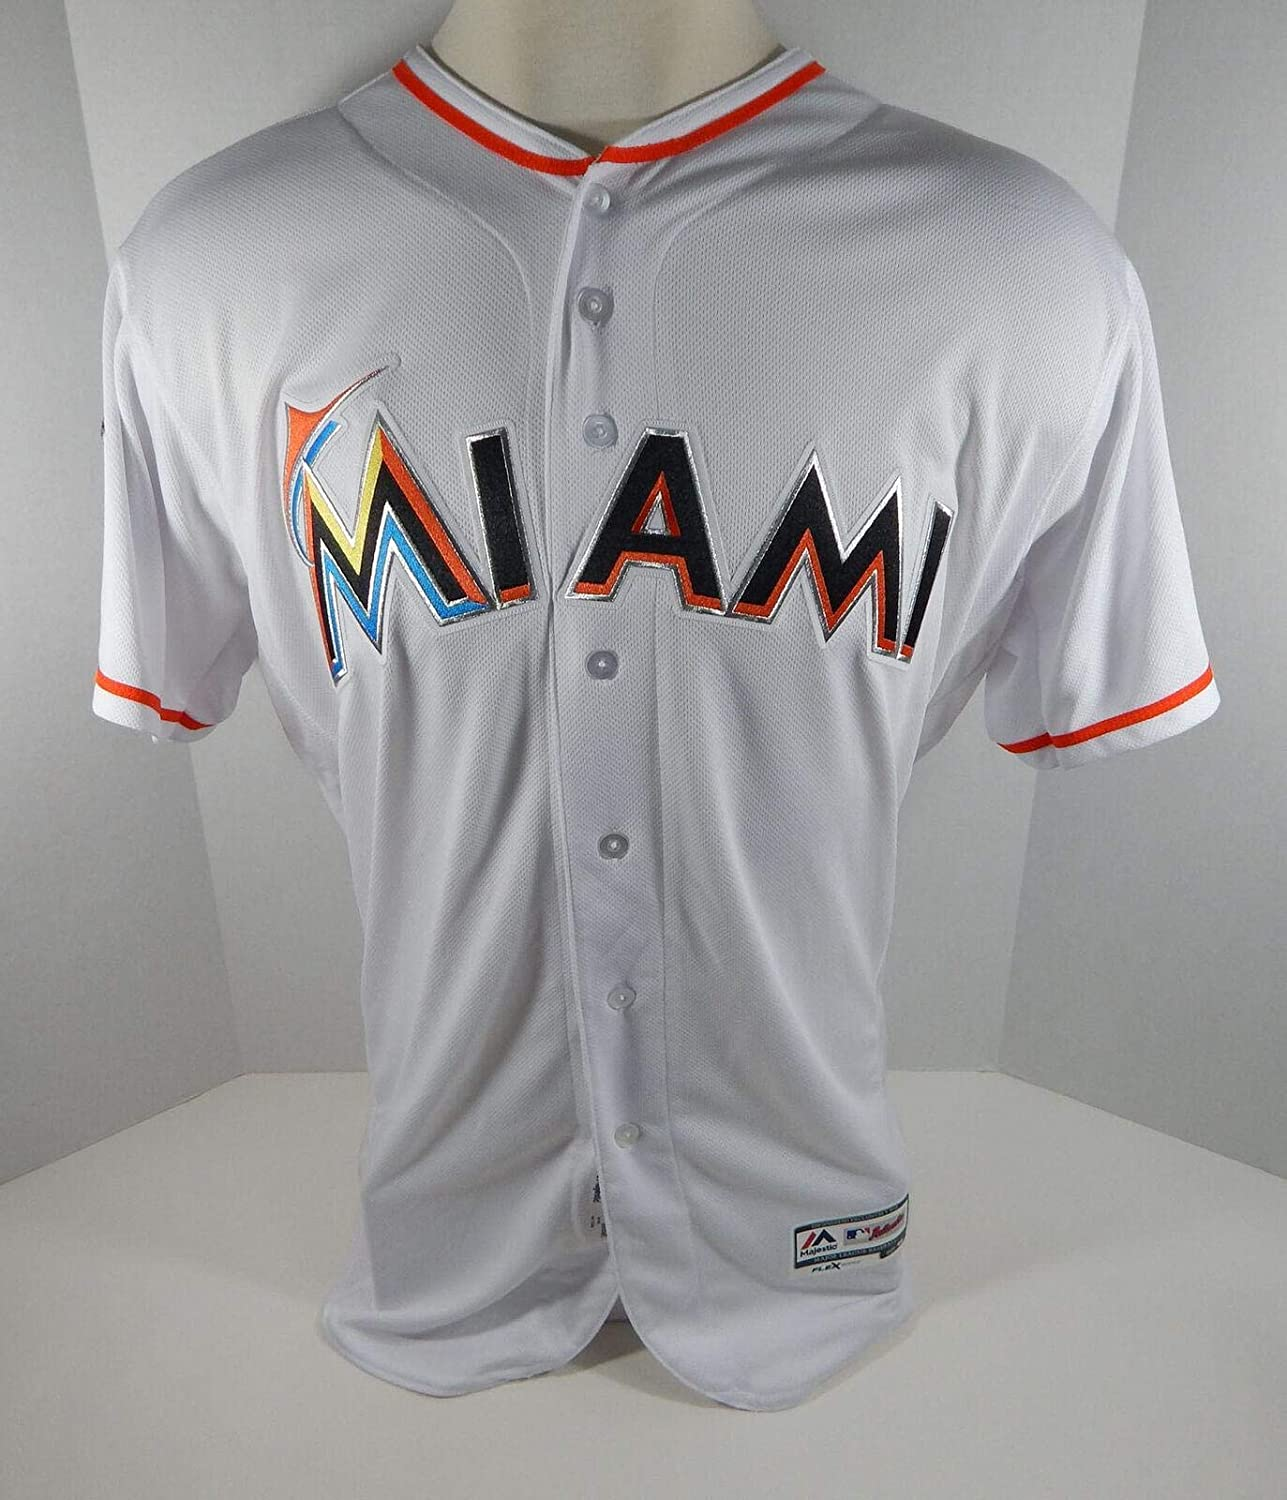 low cost 3915b a9508 2018 Miami Marlins Blank Authentic Game Issued White Jersey ...